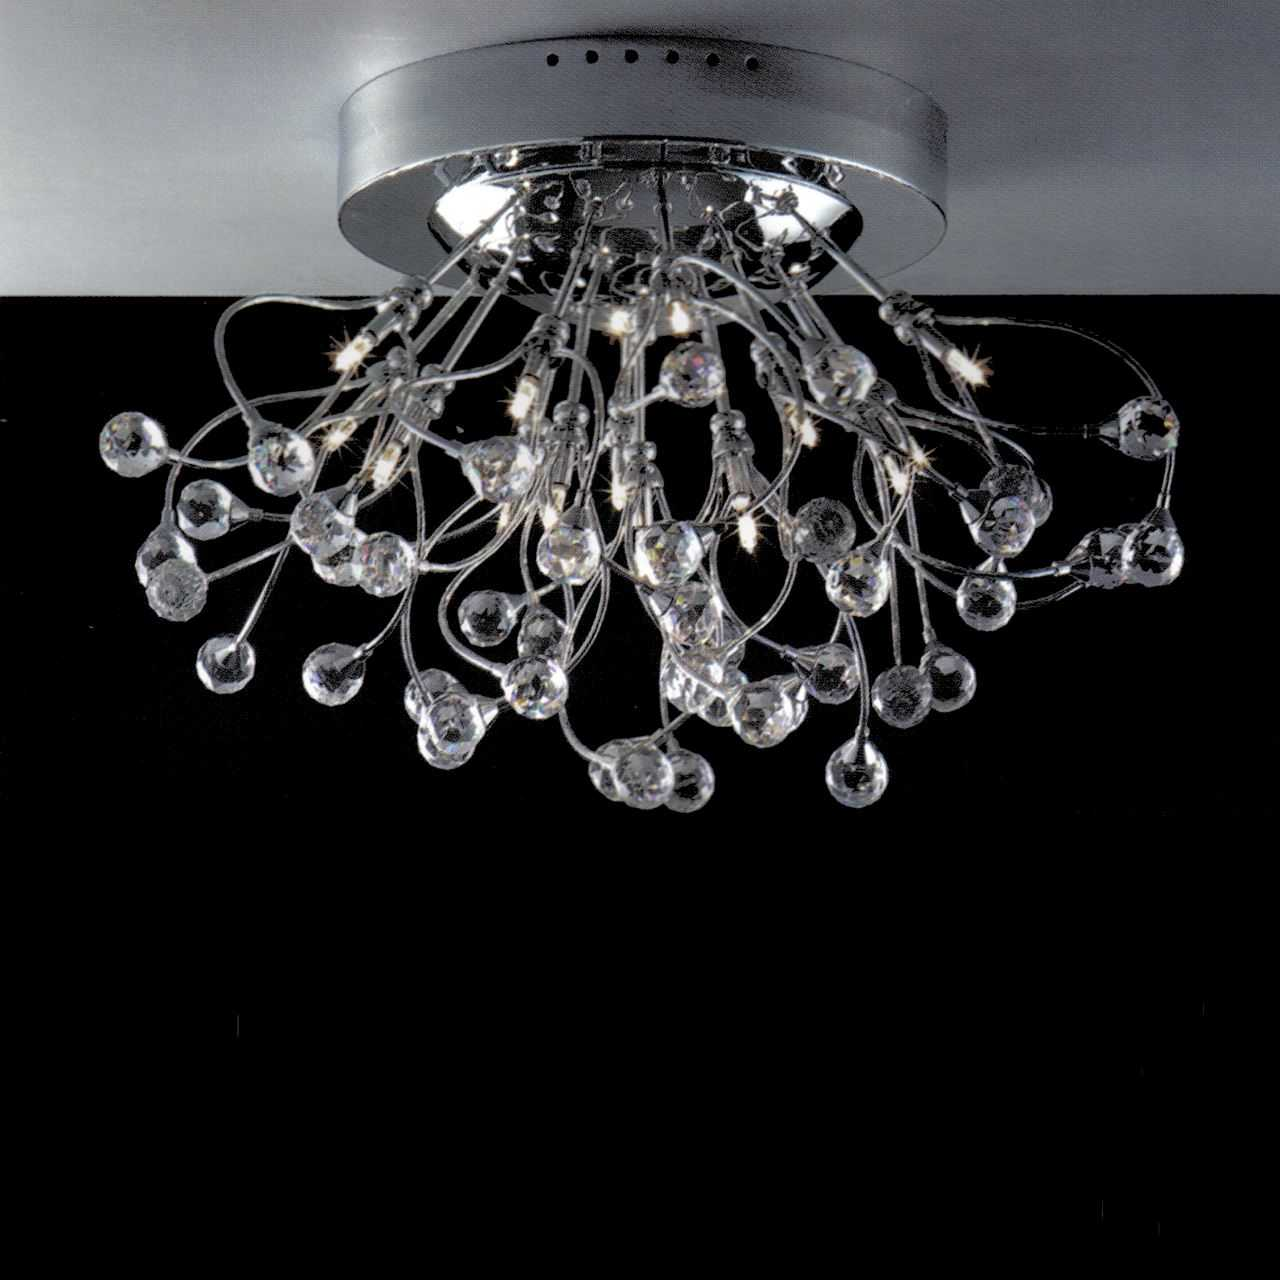 Brizzo lighting stores 24 sfera modern crystal flush mount round picture of 24 sfera modern crystal flush mount round chandelier polished chrome brushed nickel arubaitofo Gallery